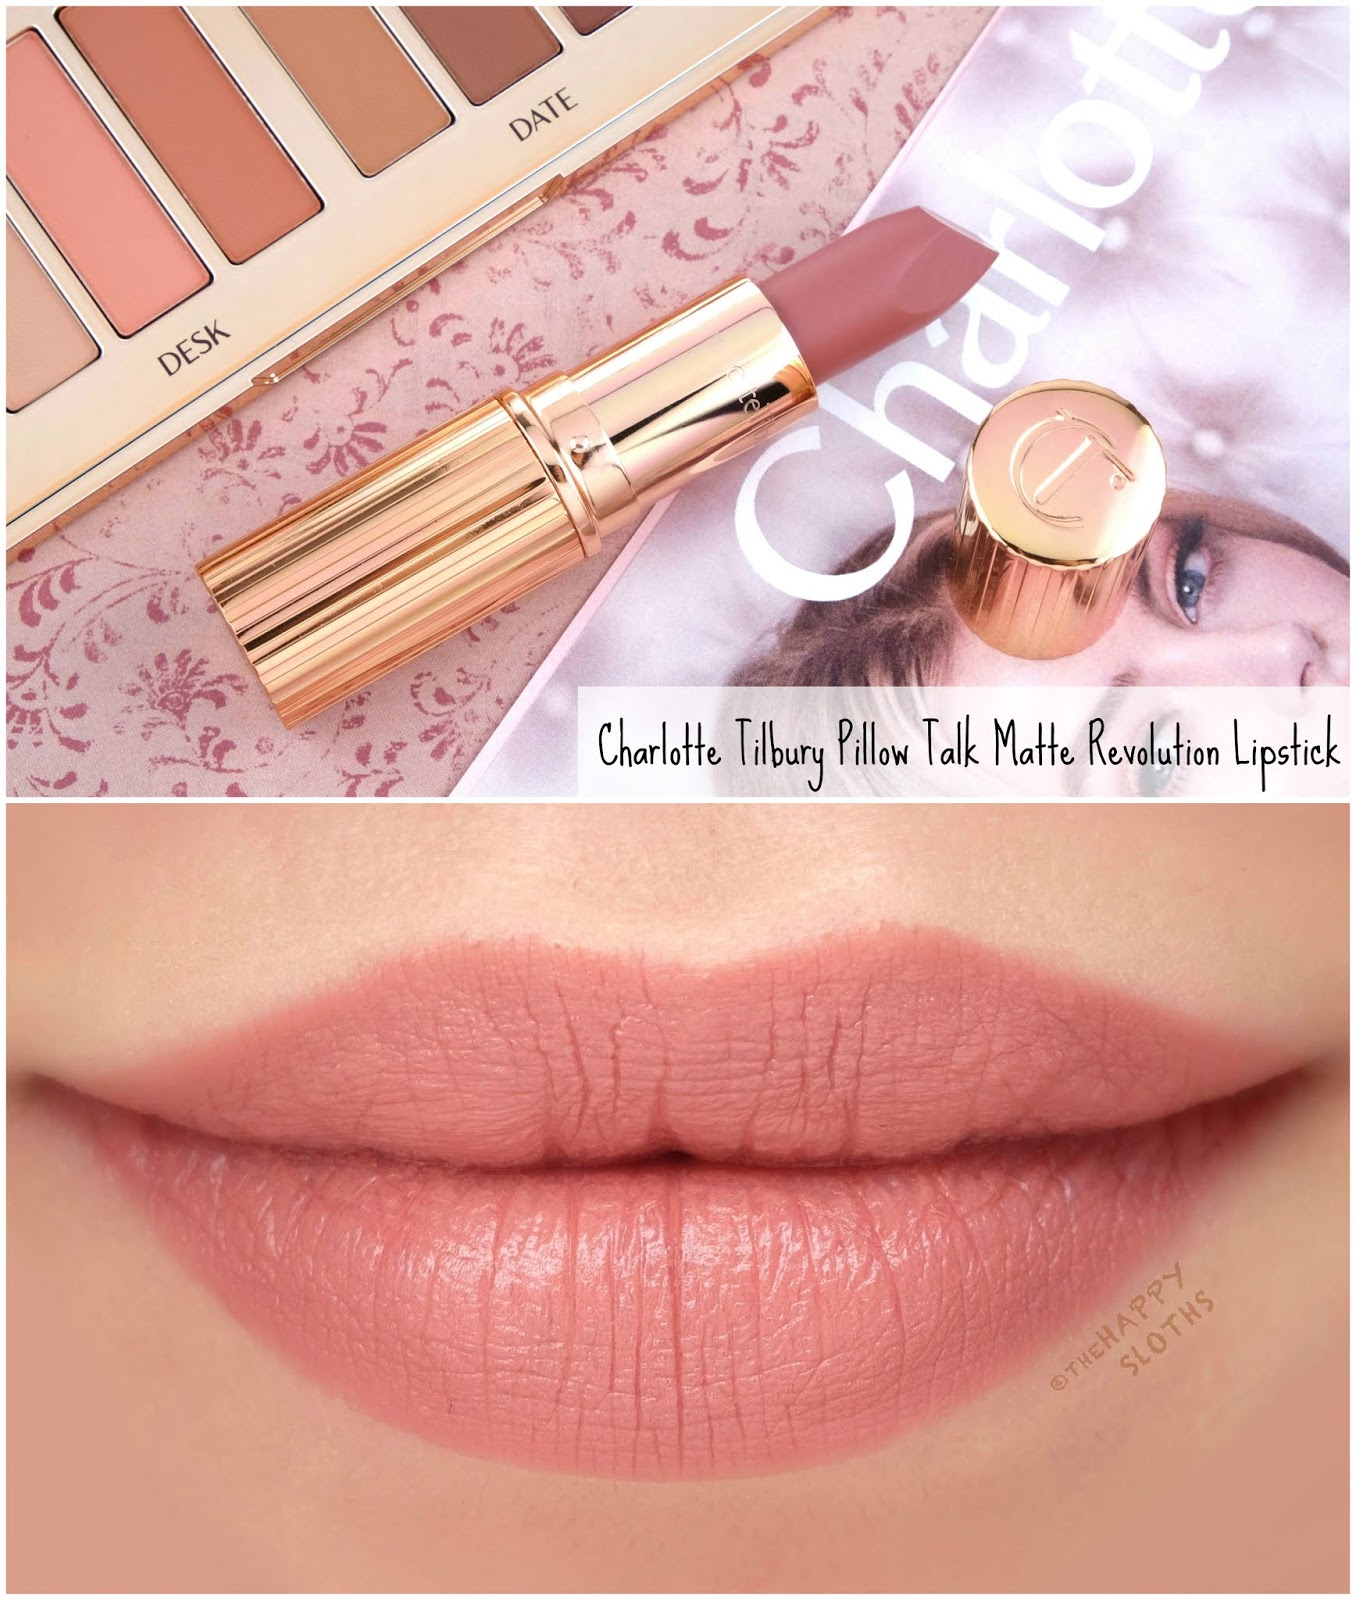 Charlotte Tilbury | Pillow Talk Lipstick: Review and Swatches